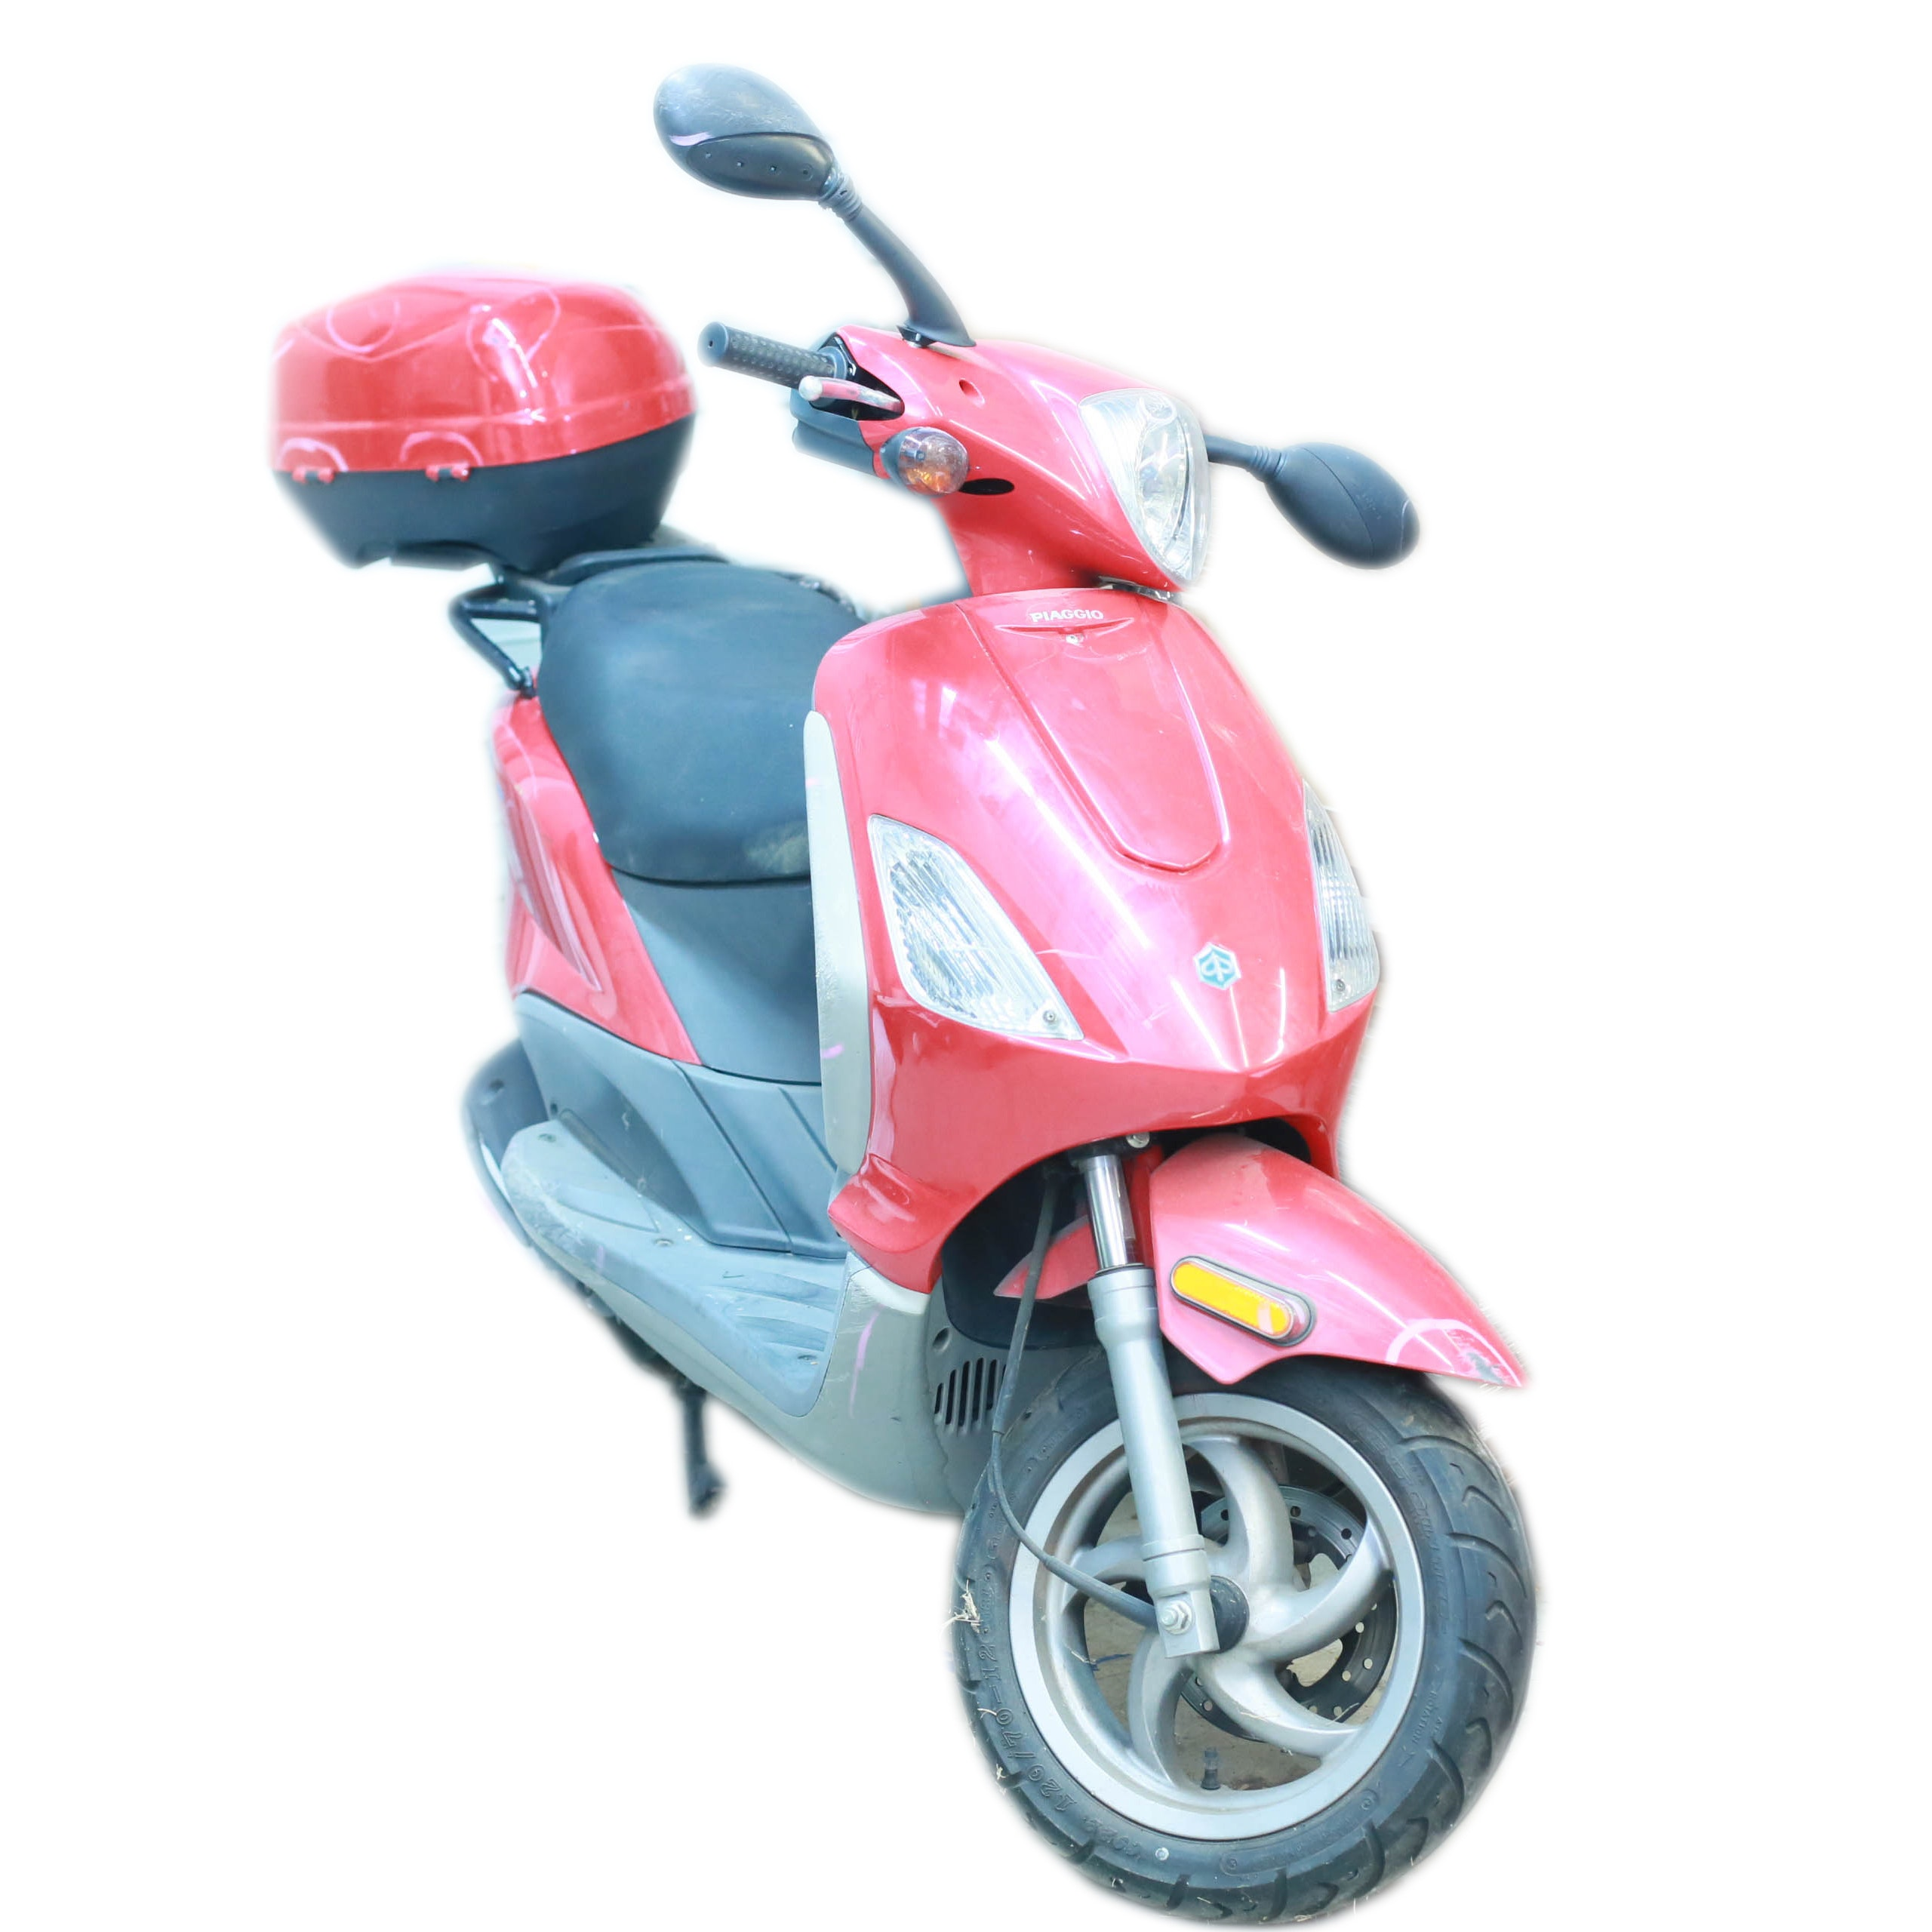 Red Piaggio Fly 50 Scooter with Two Helmets